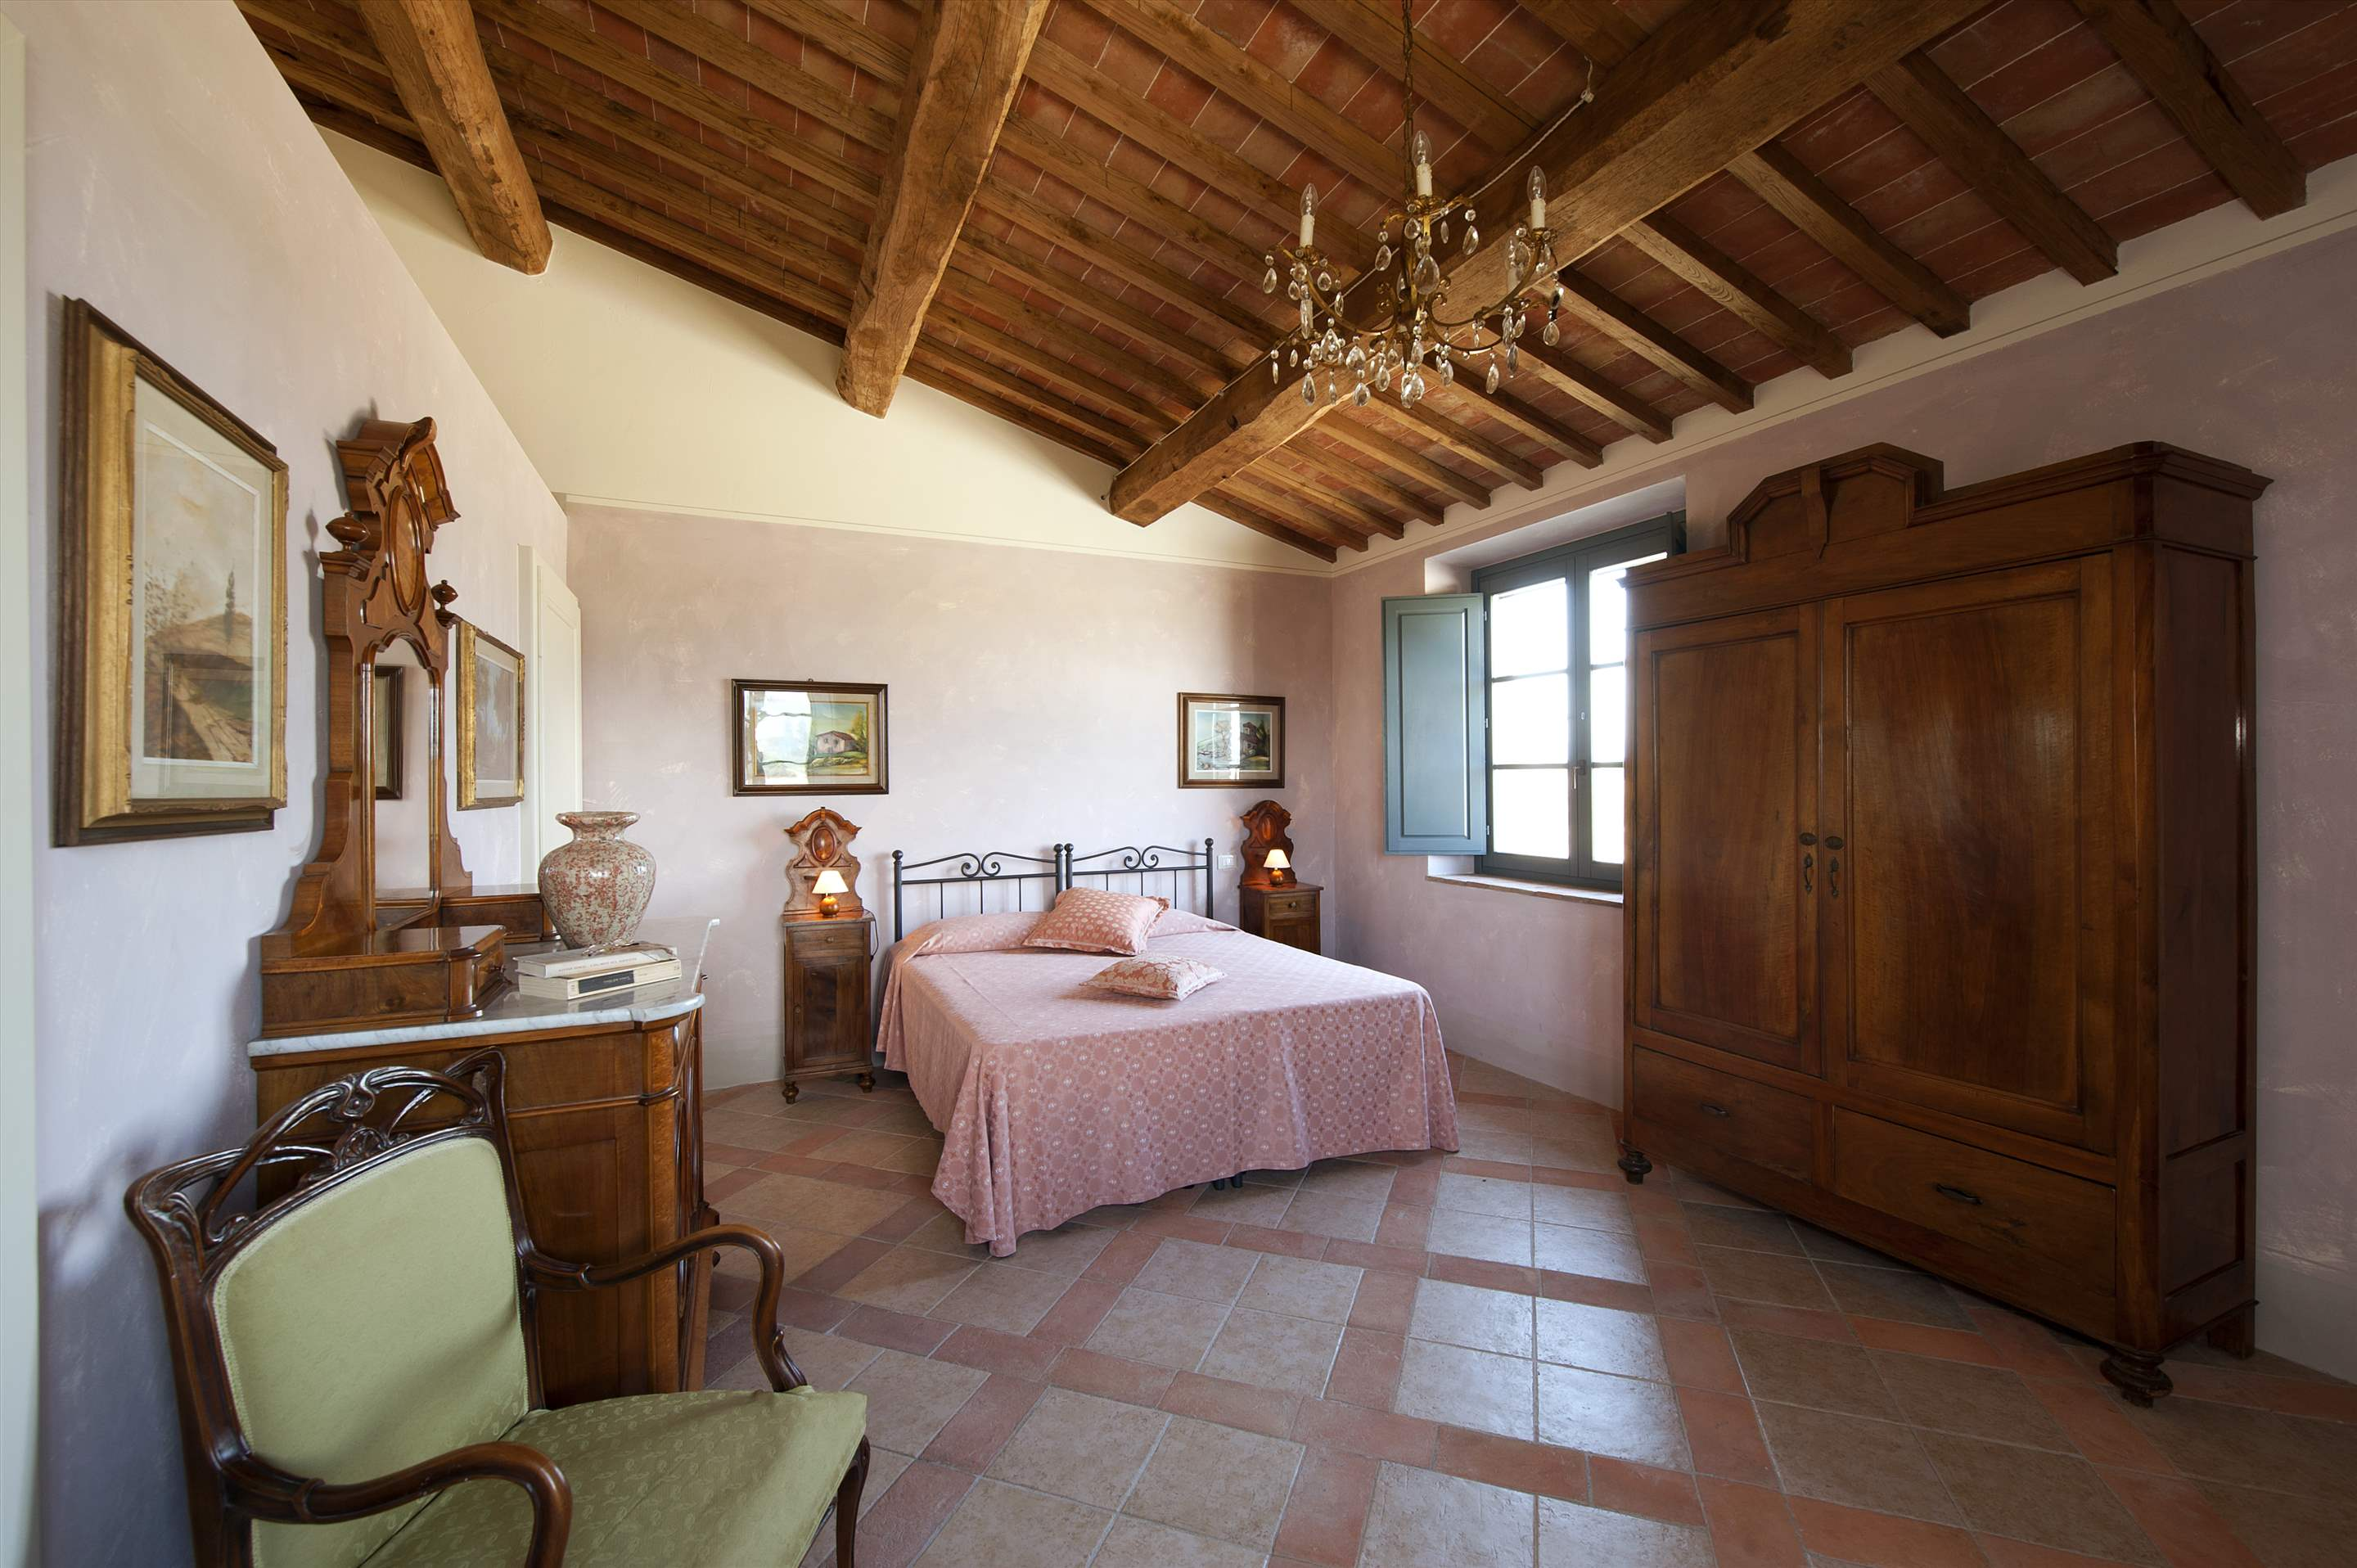 Podere Casacce, Ground Floor, 4 bedroom villa in Tuscany Coast, Tuscany Photo #25